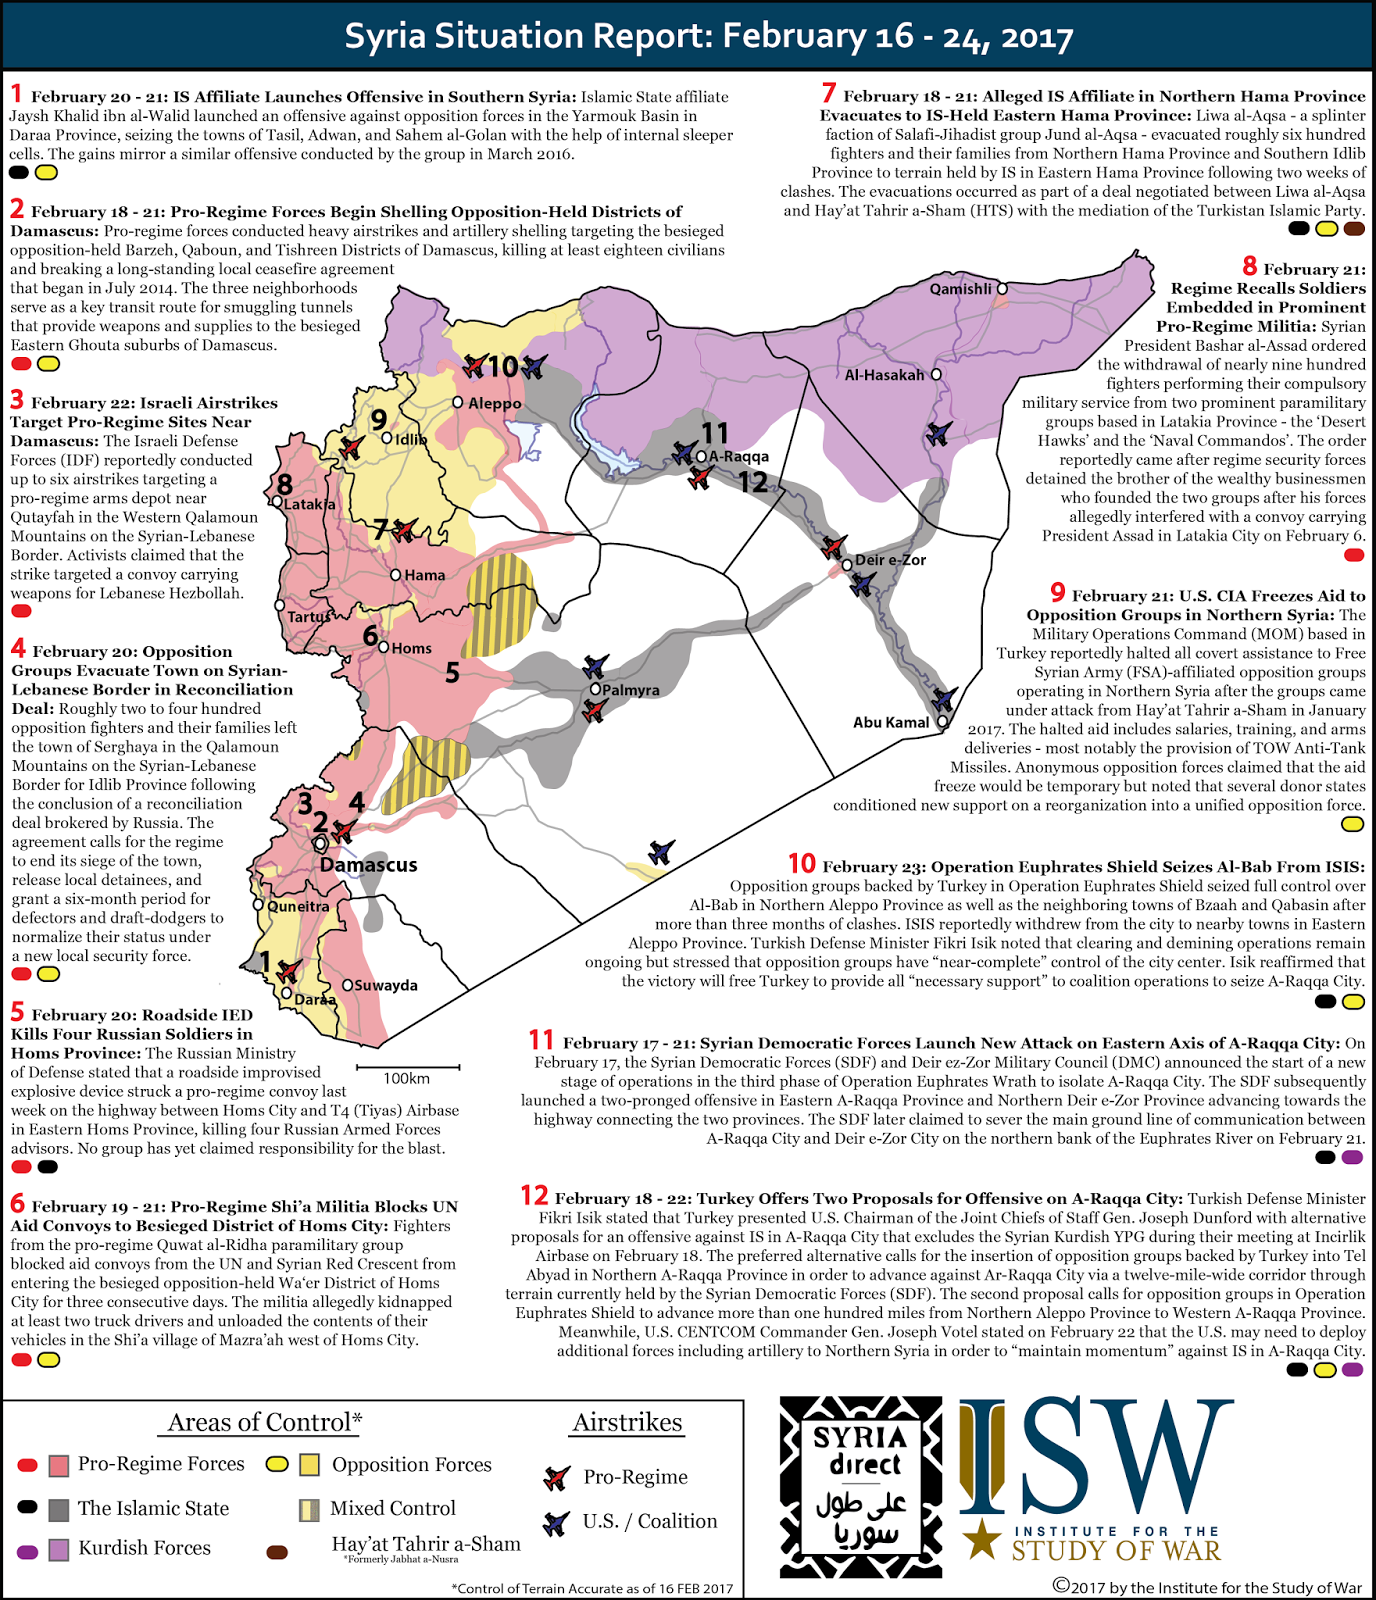 Syria Situation Report: February 16 - 24, 2017